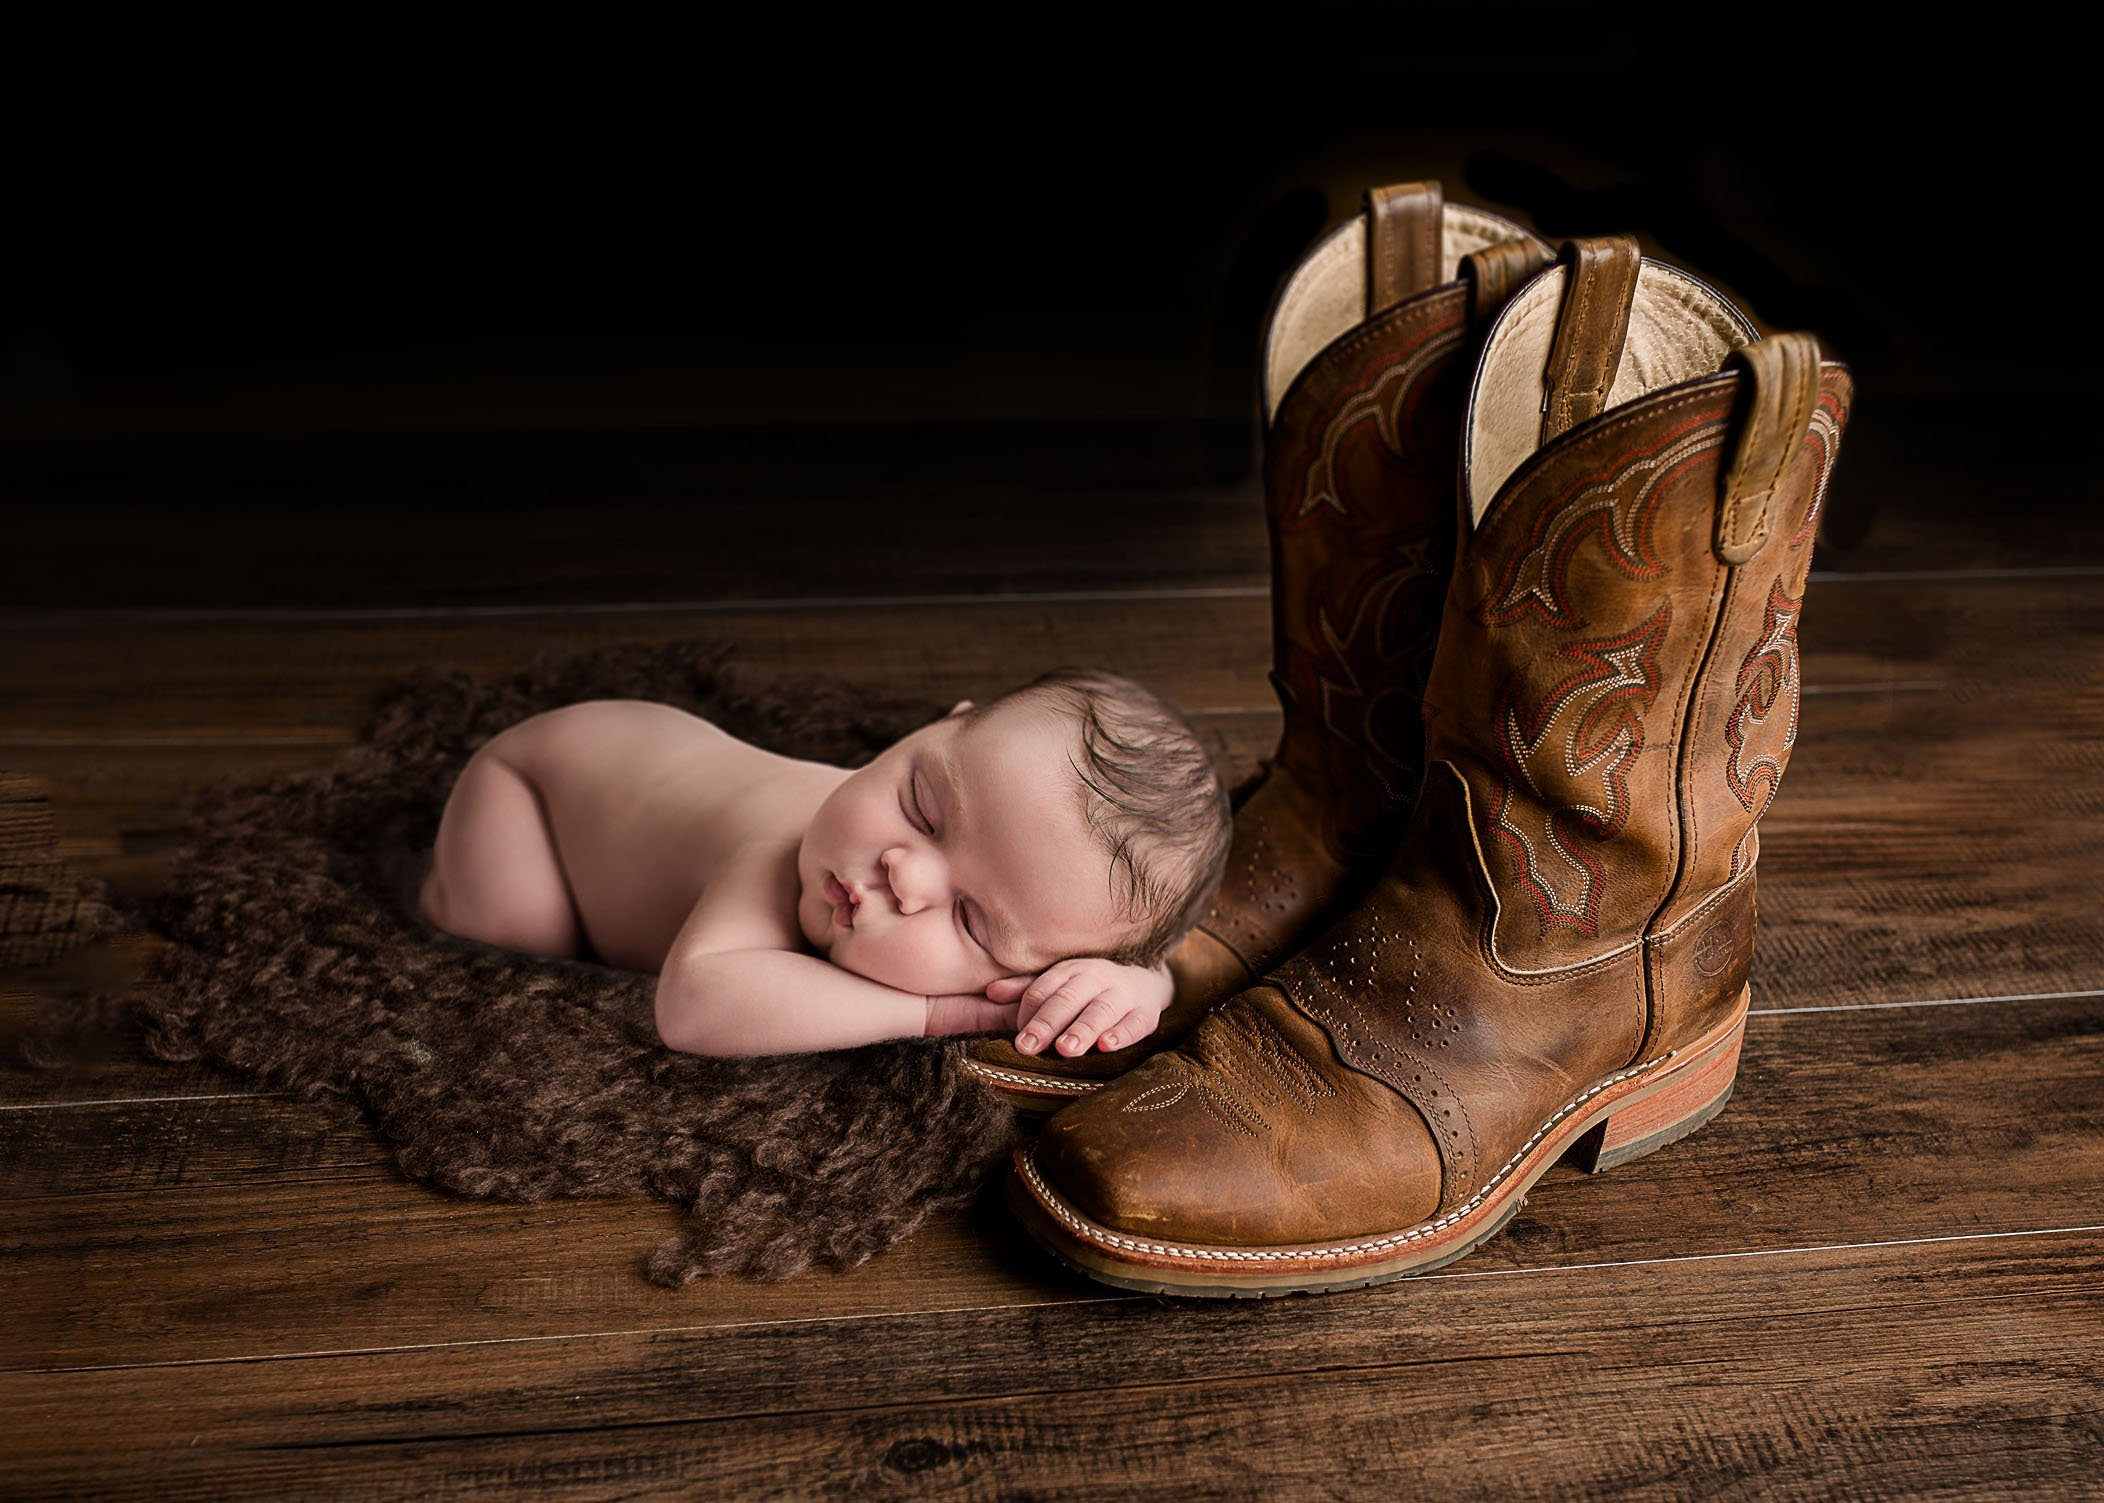 e4d75344643 Personal Newborn Baby Photography ~ Getting What You Want ...